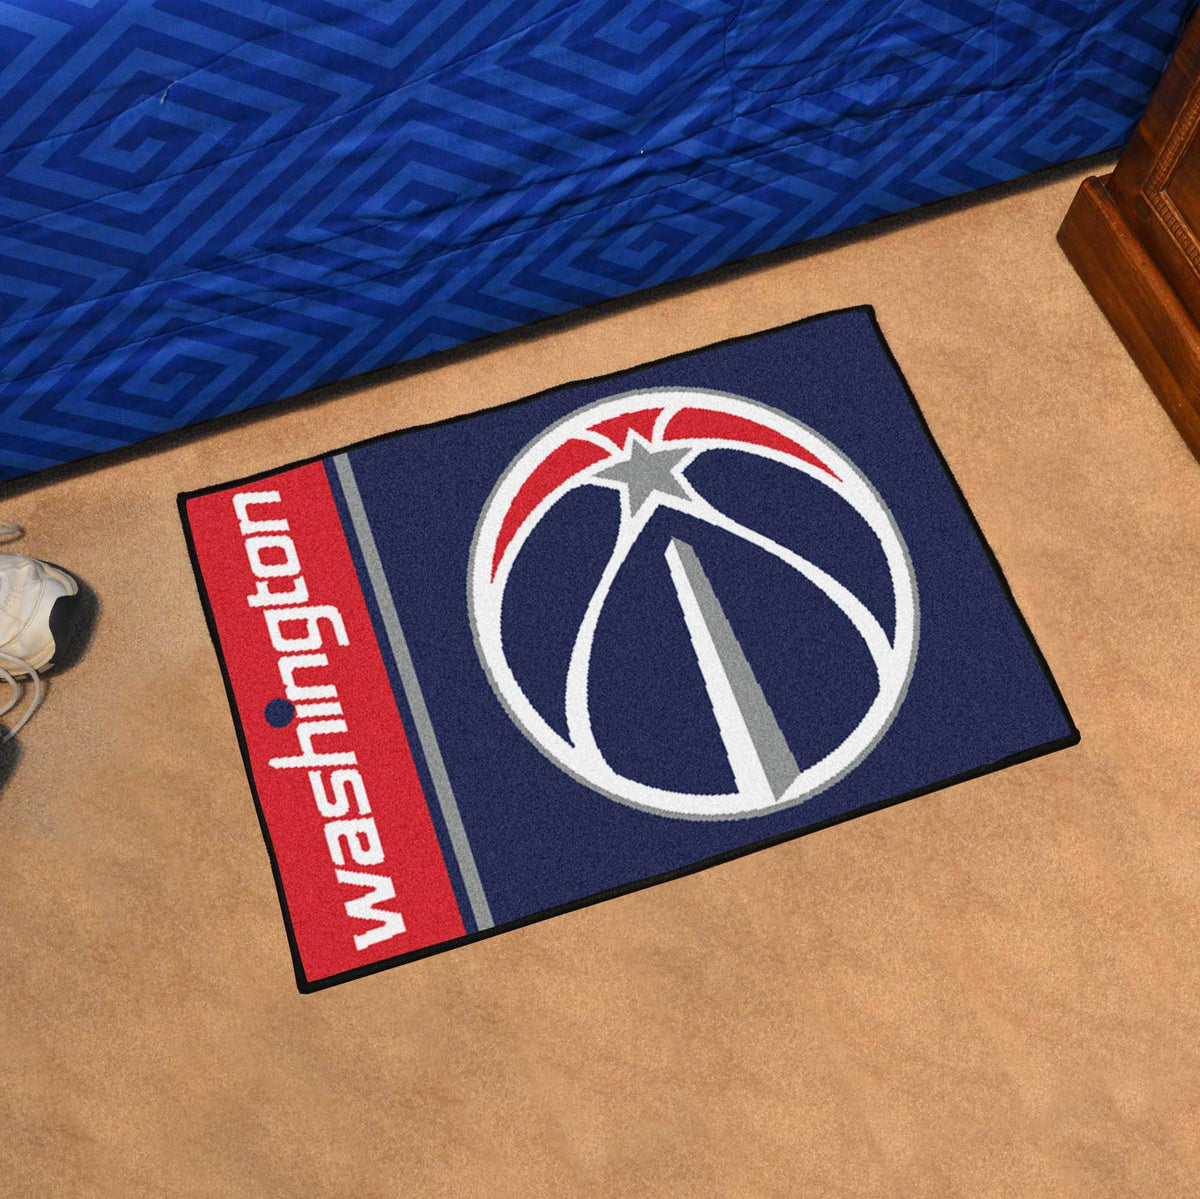 NBA - Uniform Starter Mat NBA Mats, Rectangular Mats, Uniform Starter Mat, NBA, Home Fan Mats Washington Wizards